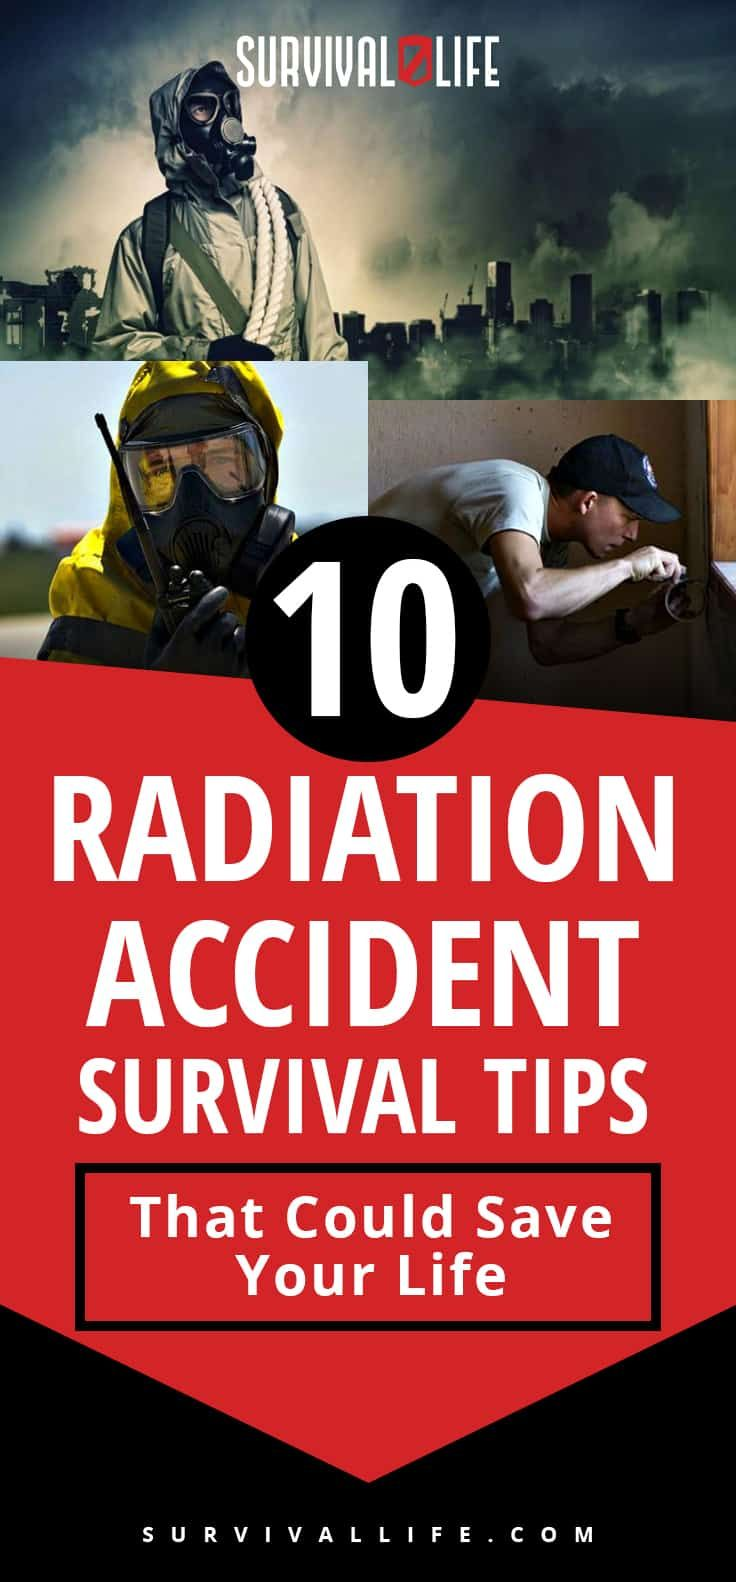 10 Radiation Accident Survival Tips That Could Save Your Life